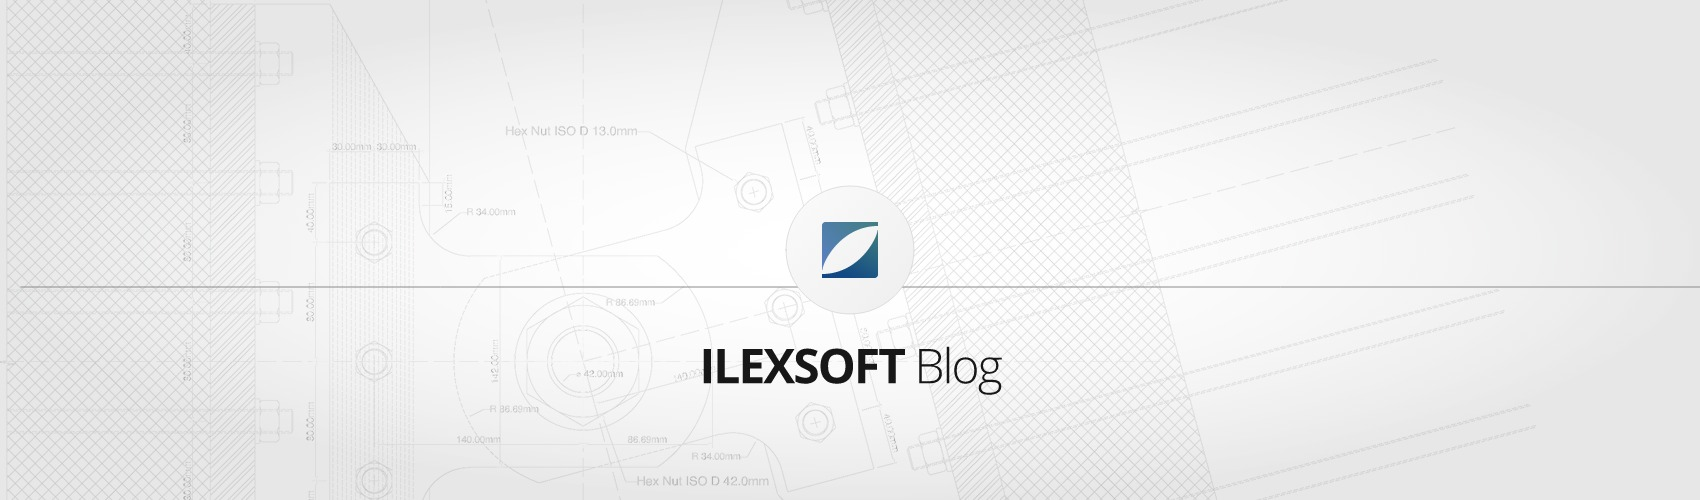 ILEXSOFT Blog